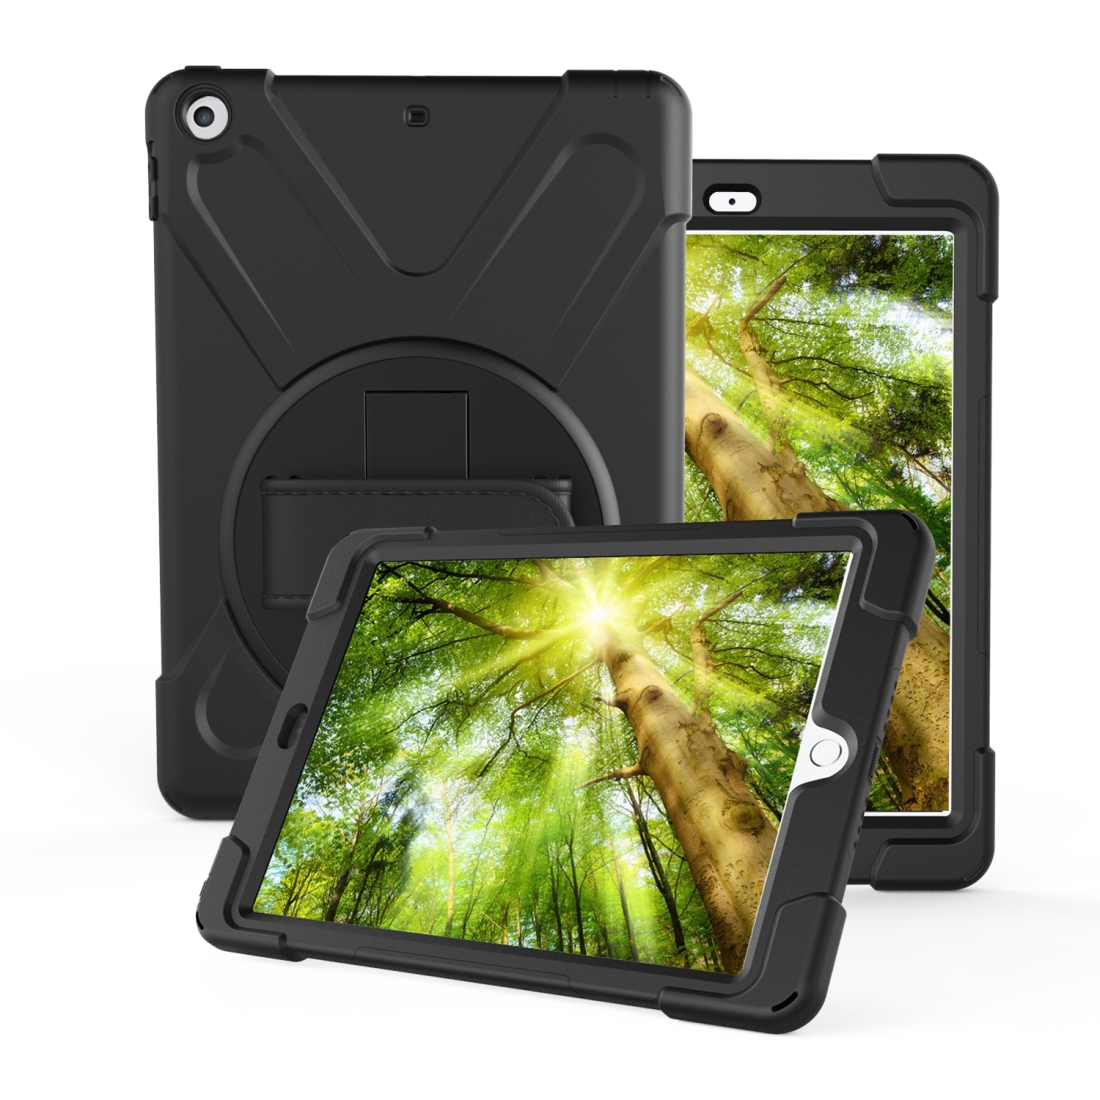 iPad 7th Generation Case (10.2 Inch) With A Protective Rotatable Design And Hand Strap (Army Green)